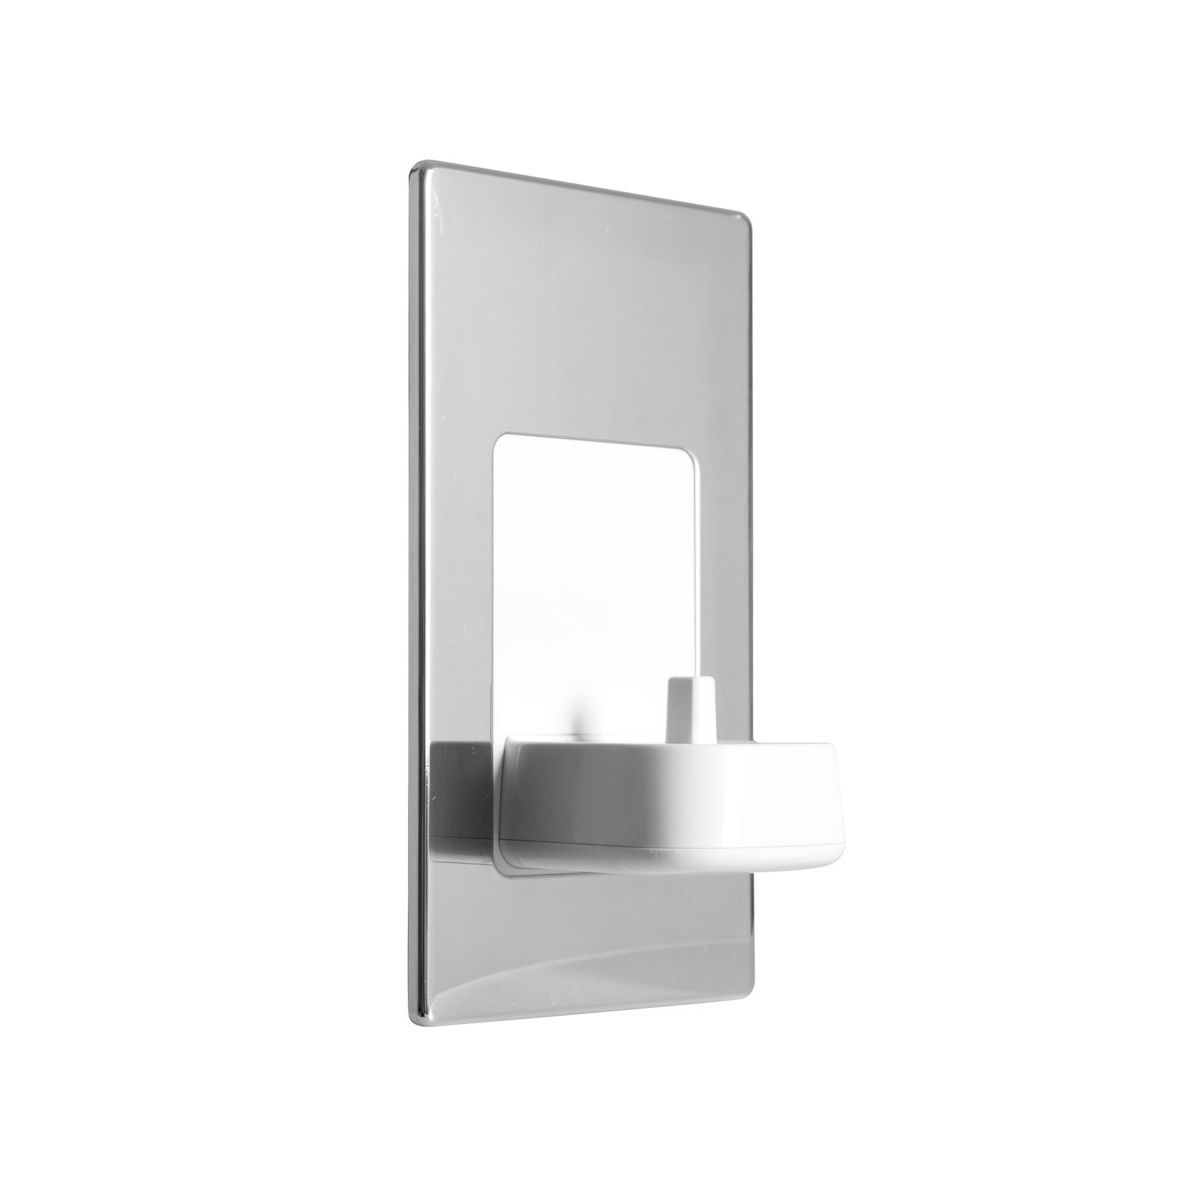 Oral B Toothbrush Wall Mounted Charger